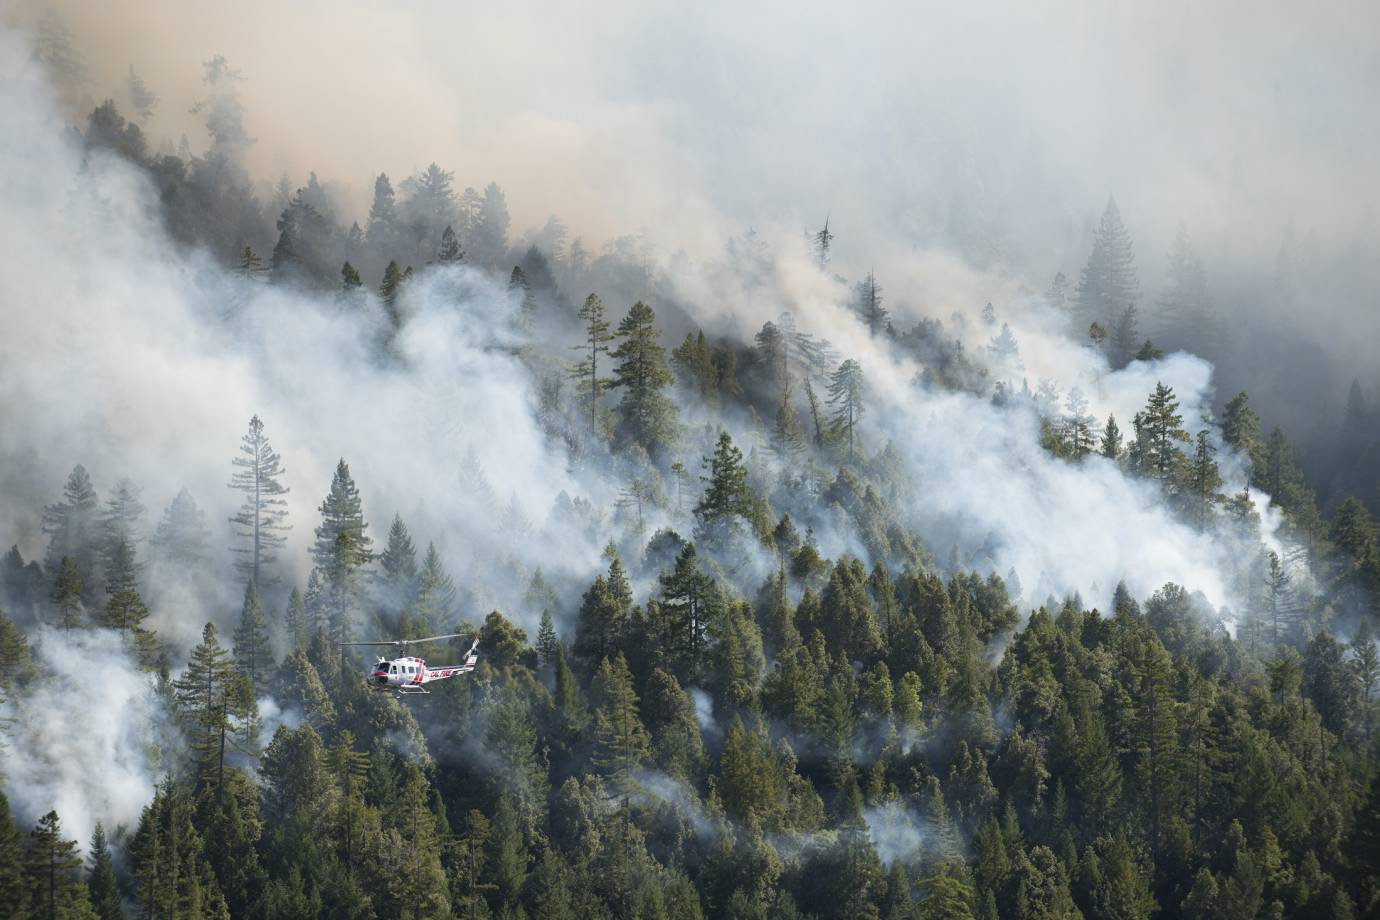 Firefighters survey a large forest fire in Northern California (Photo/N.F. Photography, Shutterstock)